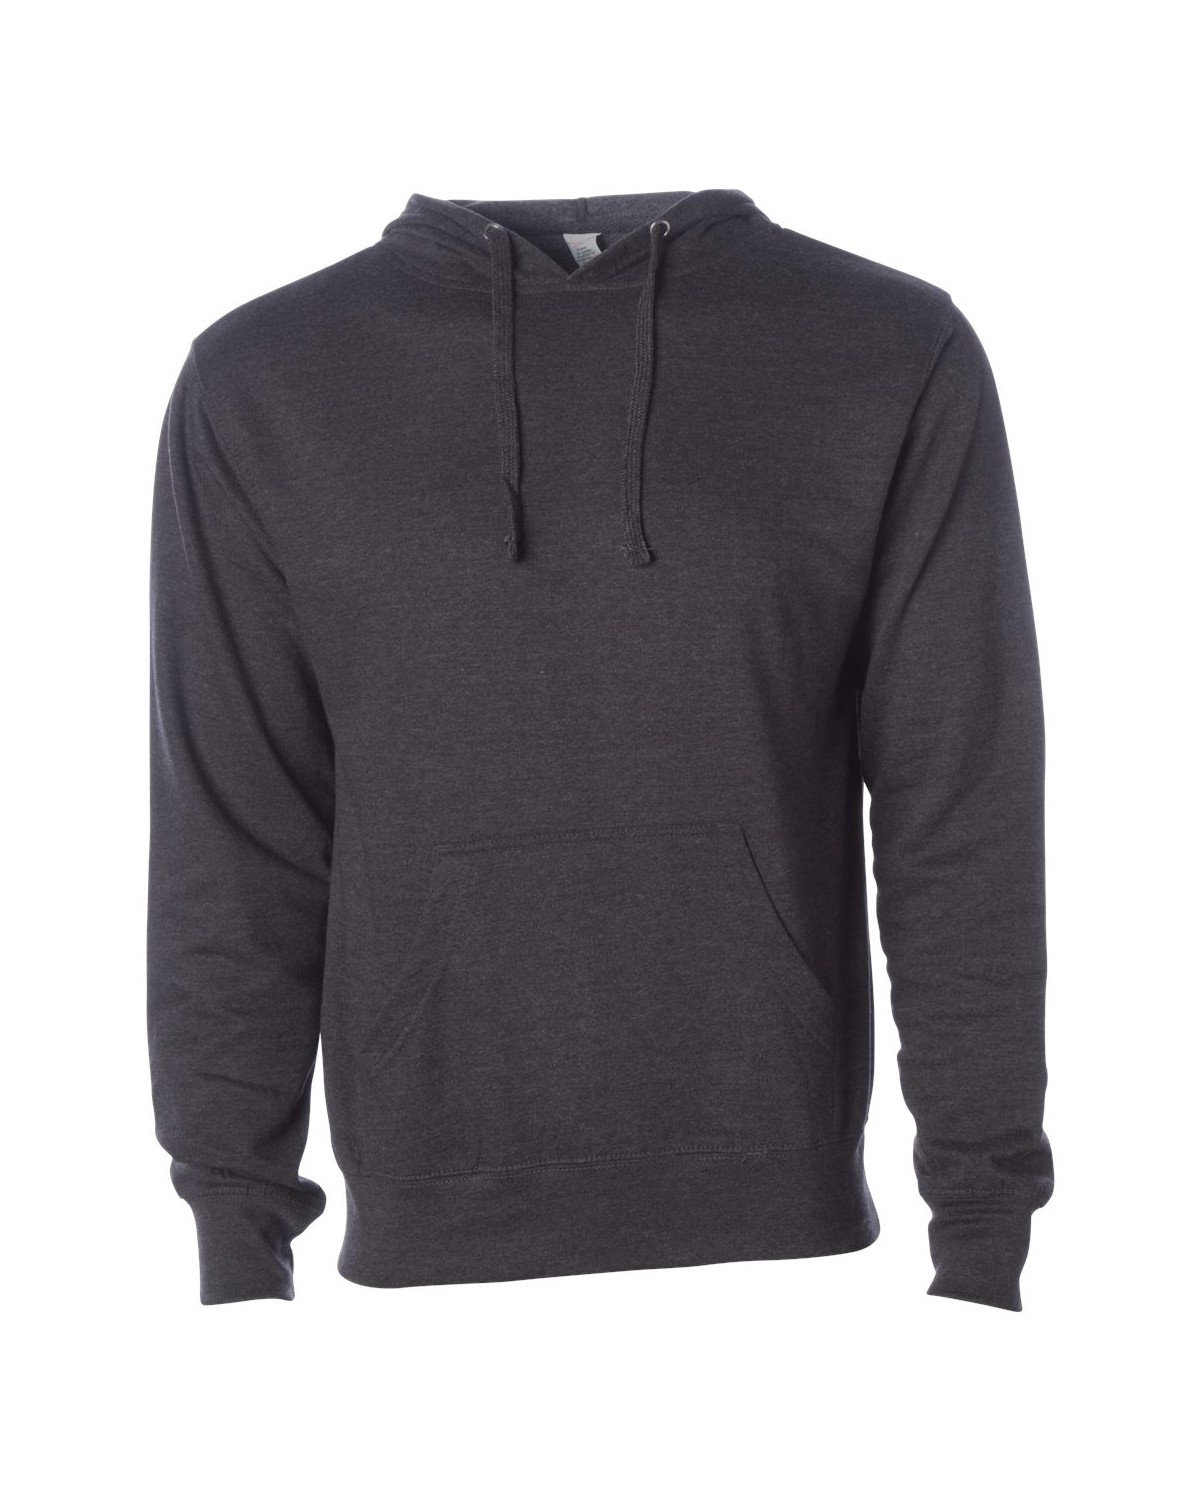 SS4500 Independent Trading Co. CHARCOAL HEATHER